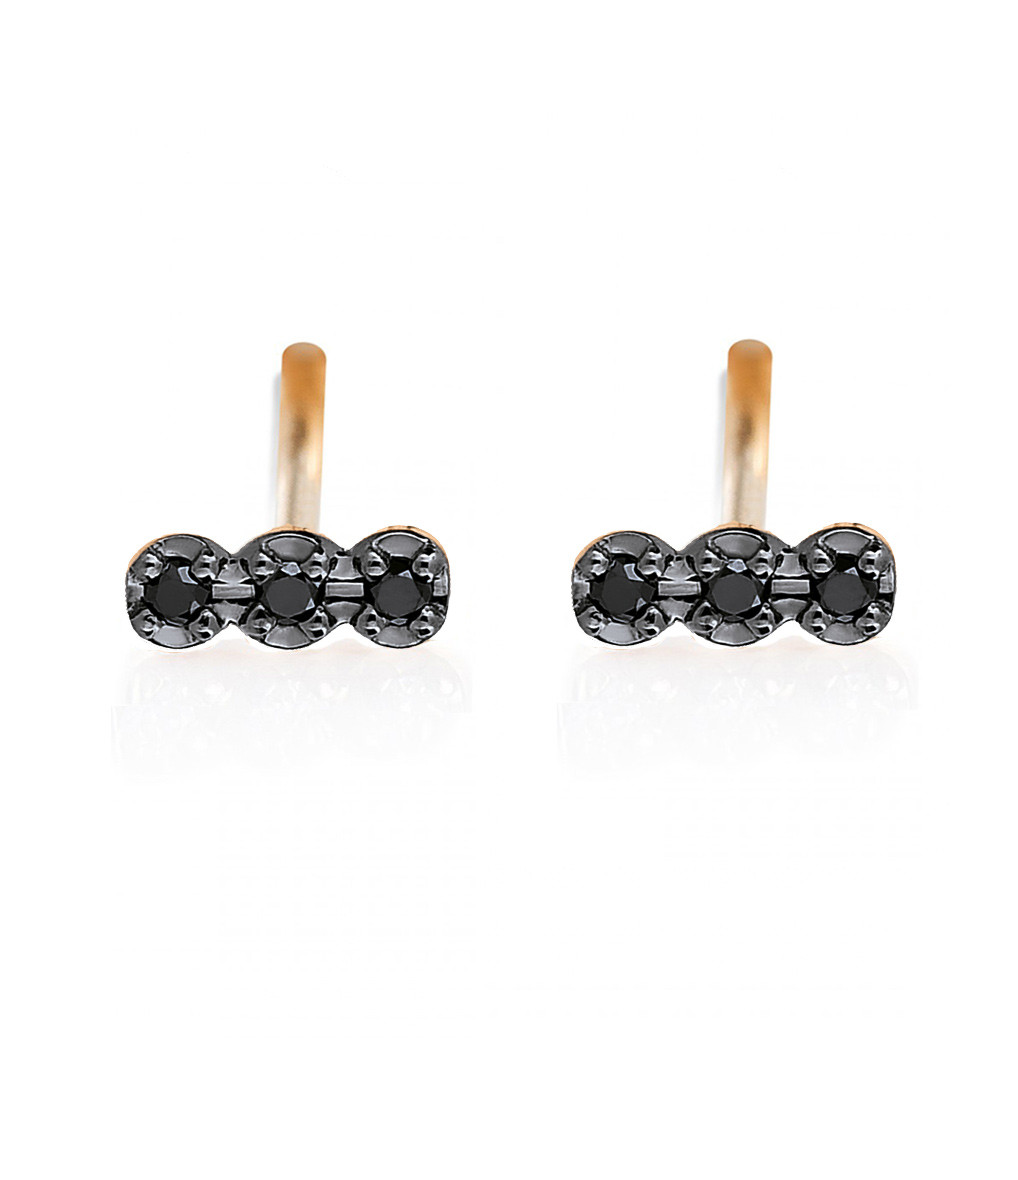 GINETTE_NY - Boucles d'oreilles Black Diamonds Icons 3 Diamants Or Rose